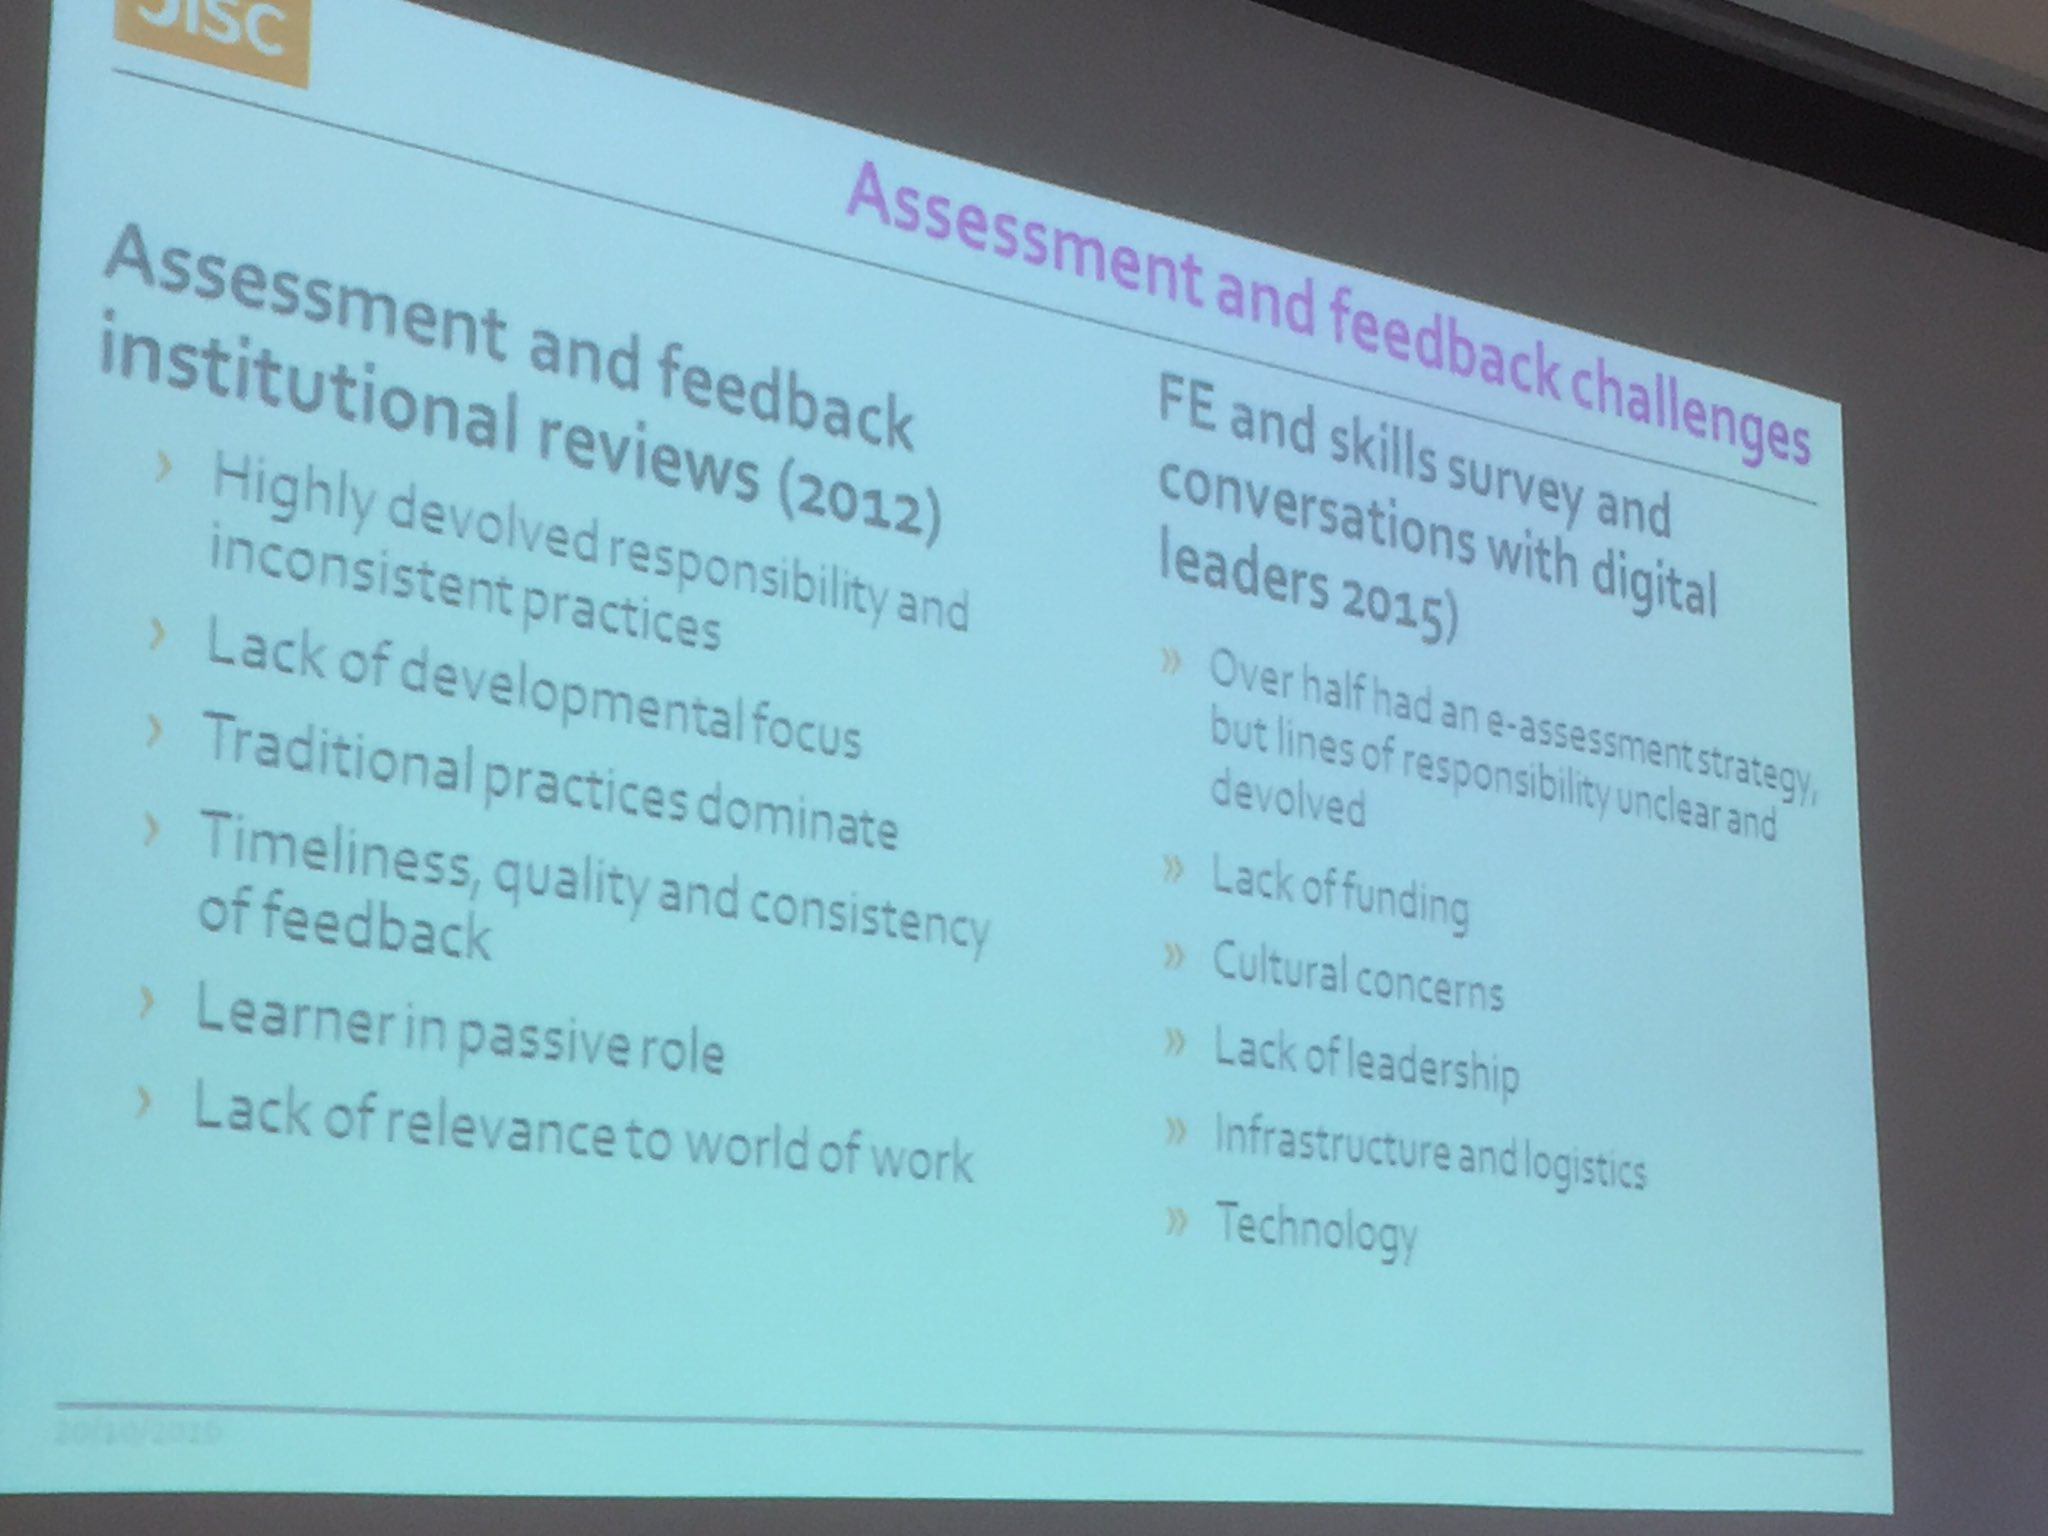 Assessment and feedback challenges for FE and Skills from @ljanegray #feltag https://t.co/xYNQr6qxEA